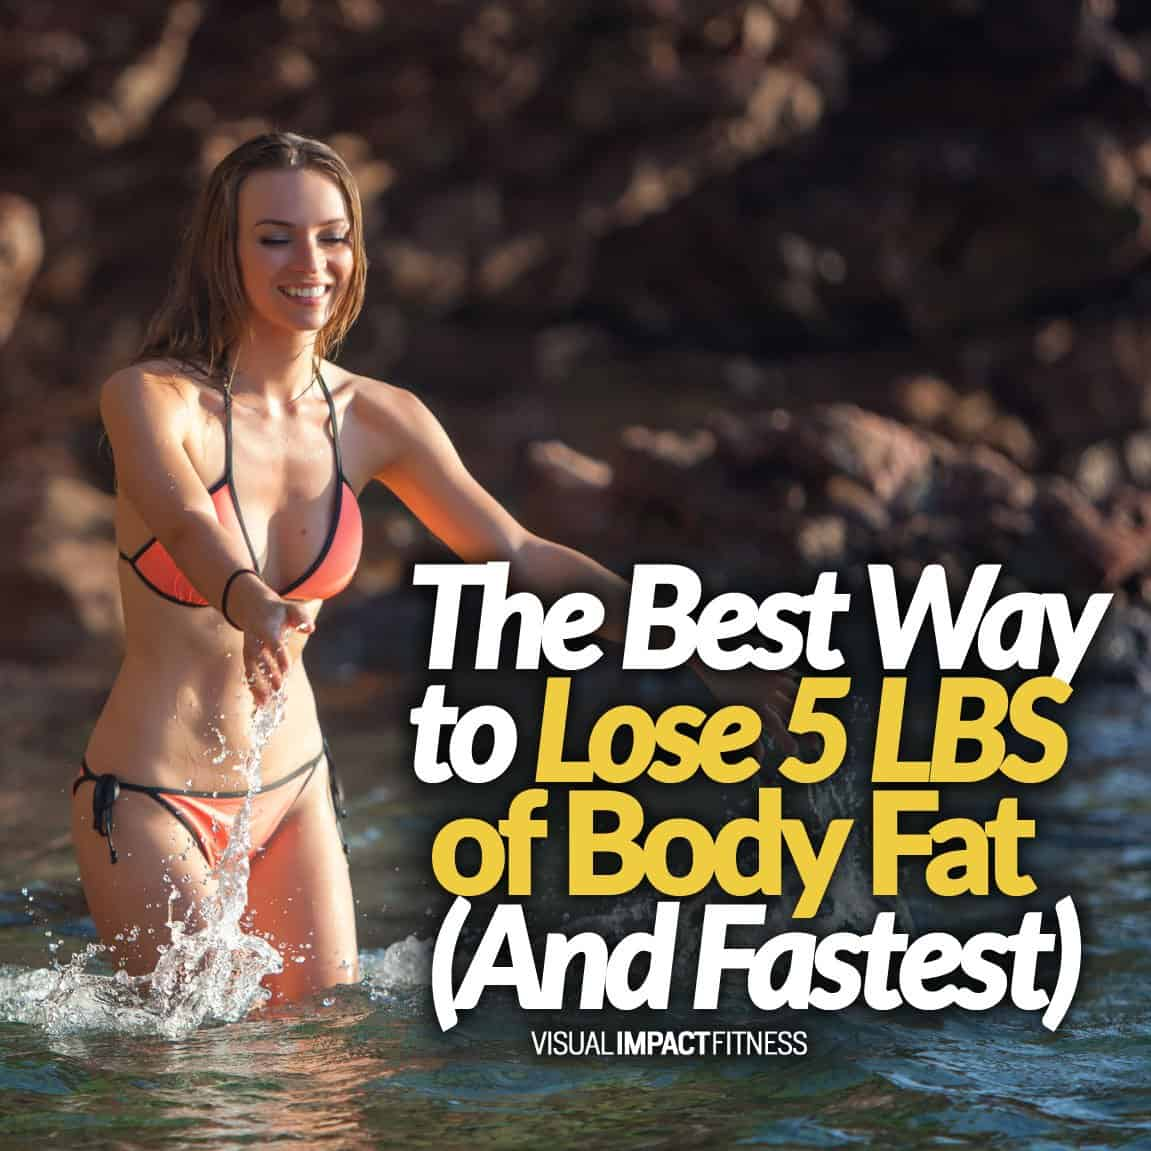 The Best Way to Lose 5 LBS of Body Fat (And Fastest)